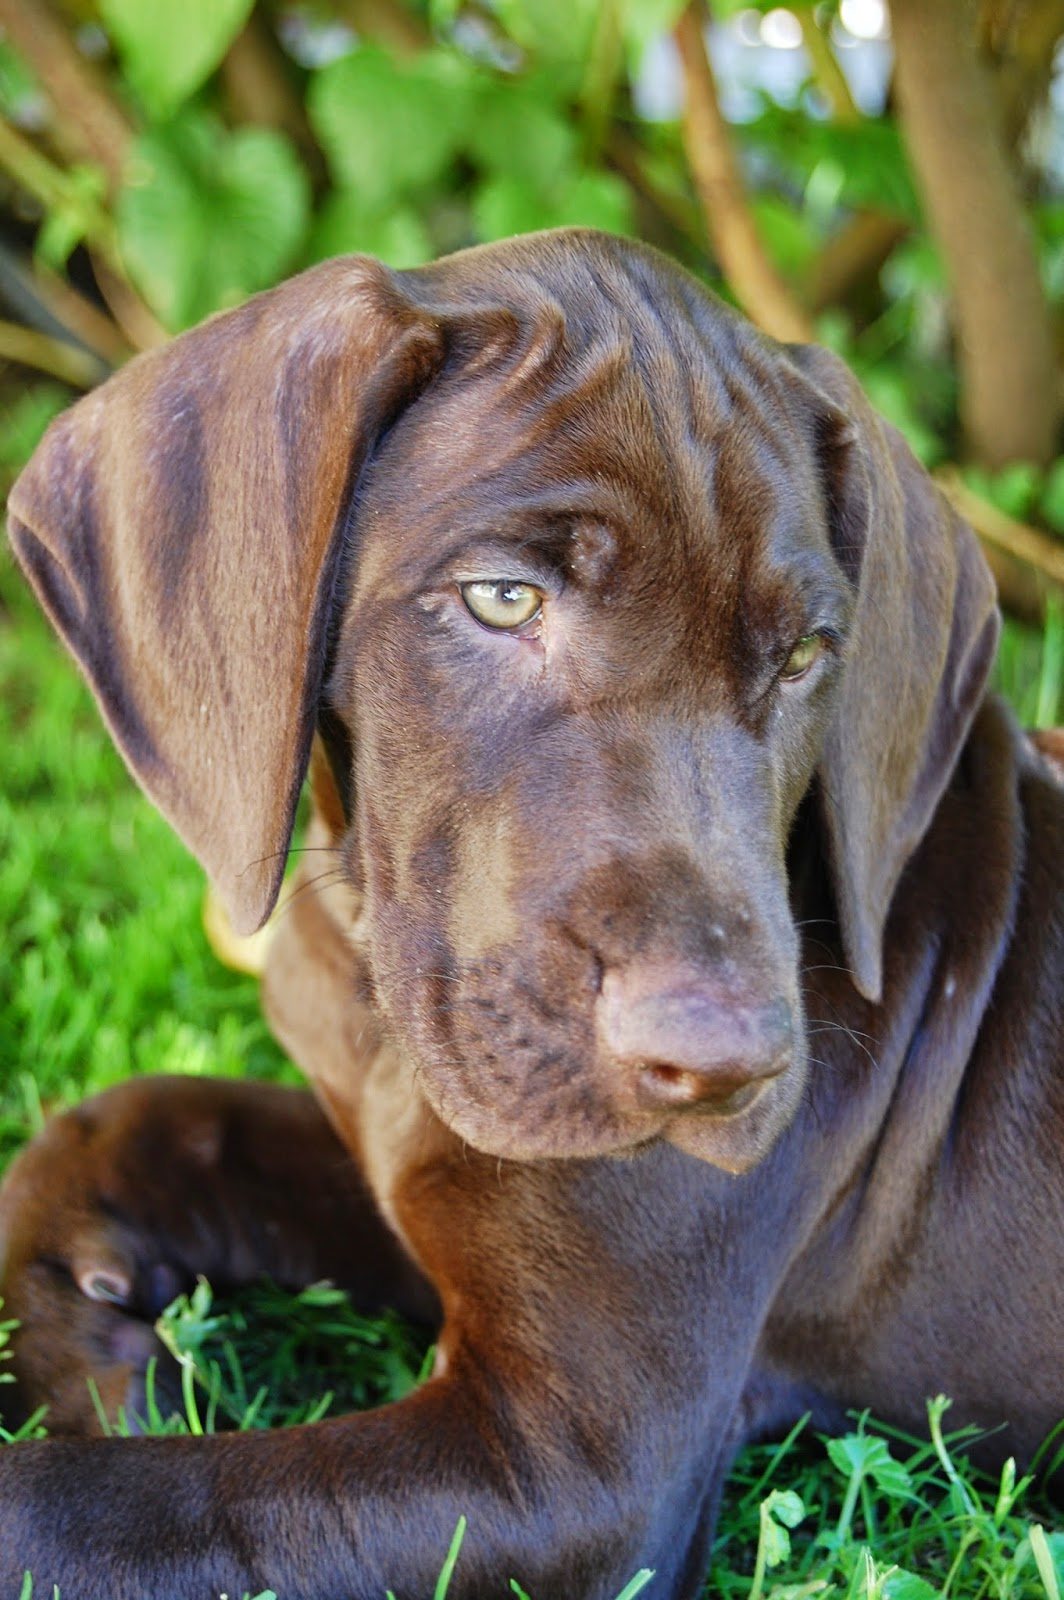 xeno, deutschkurzhaar, dkh, jagdhund, vorstehhund, gsp, germanshorthairedpointer, germanshorthairpointer, germanshorthair, gundog, huntingdog, dog, best friend, pet, hund, haustier, bester freund, pfoten, xenobiophilia, lifestyleblog